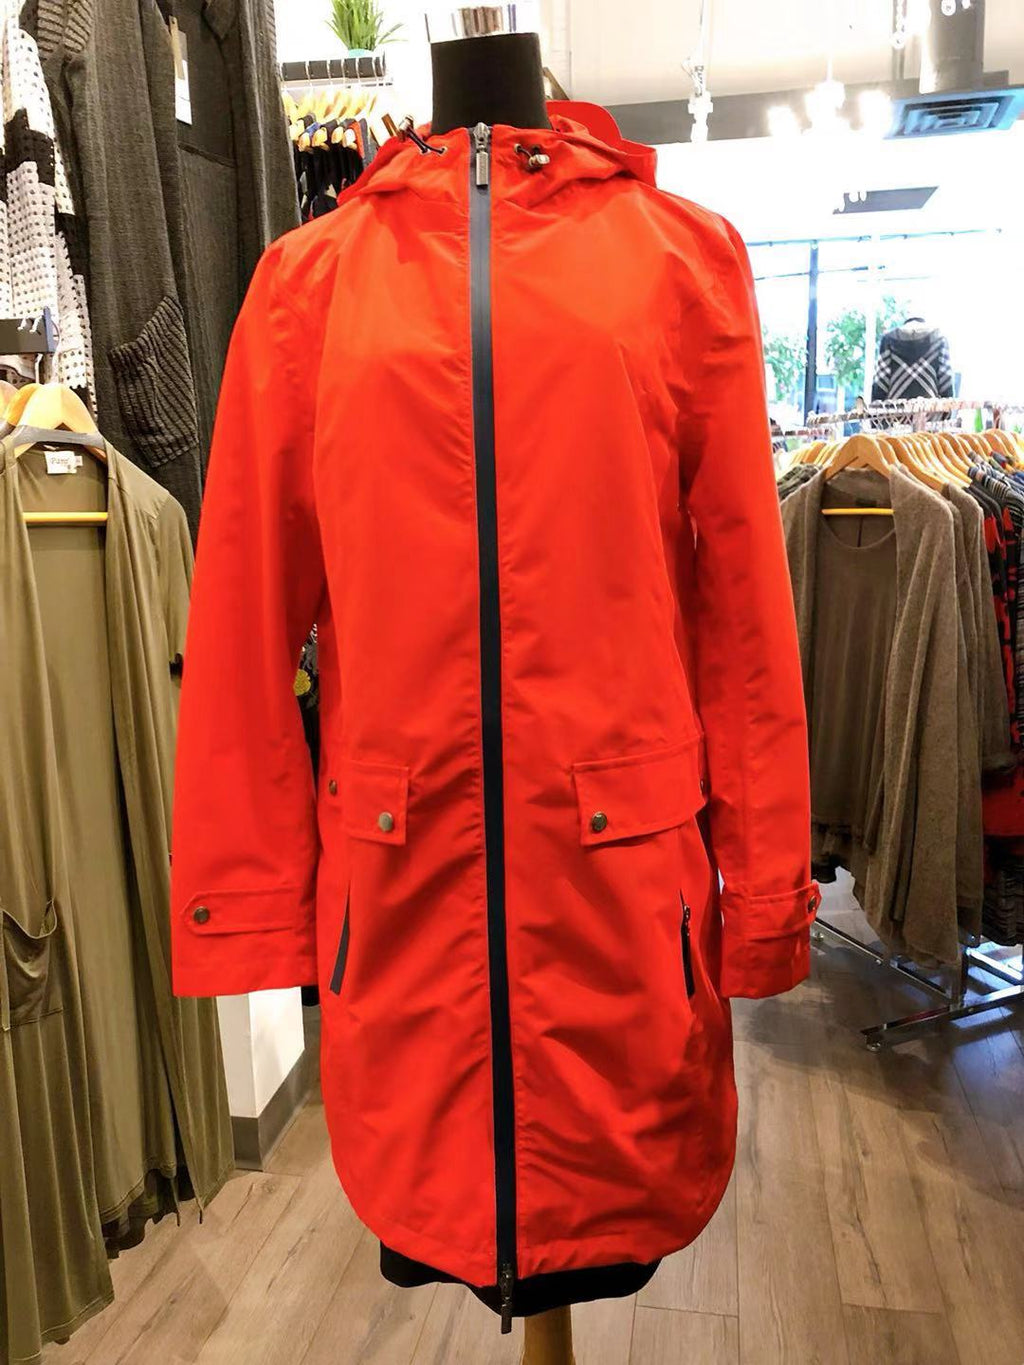 Waterproof Jacket with Lining